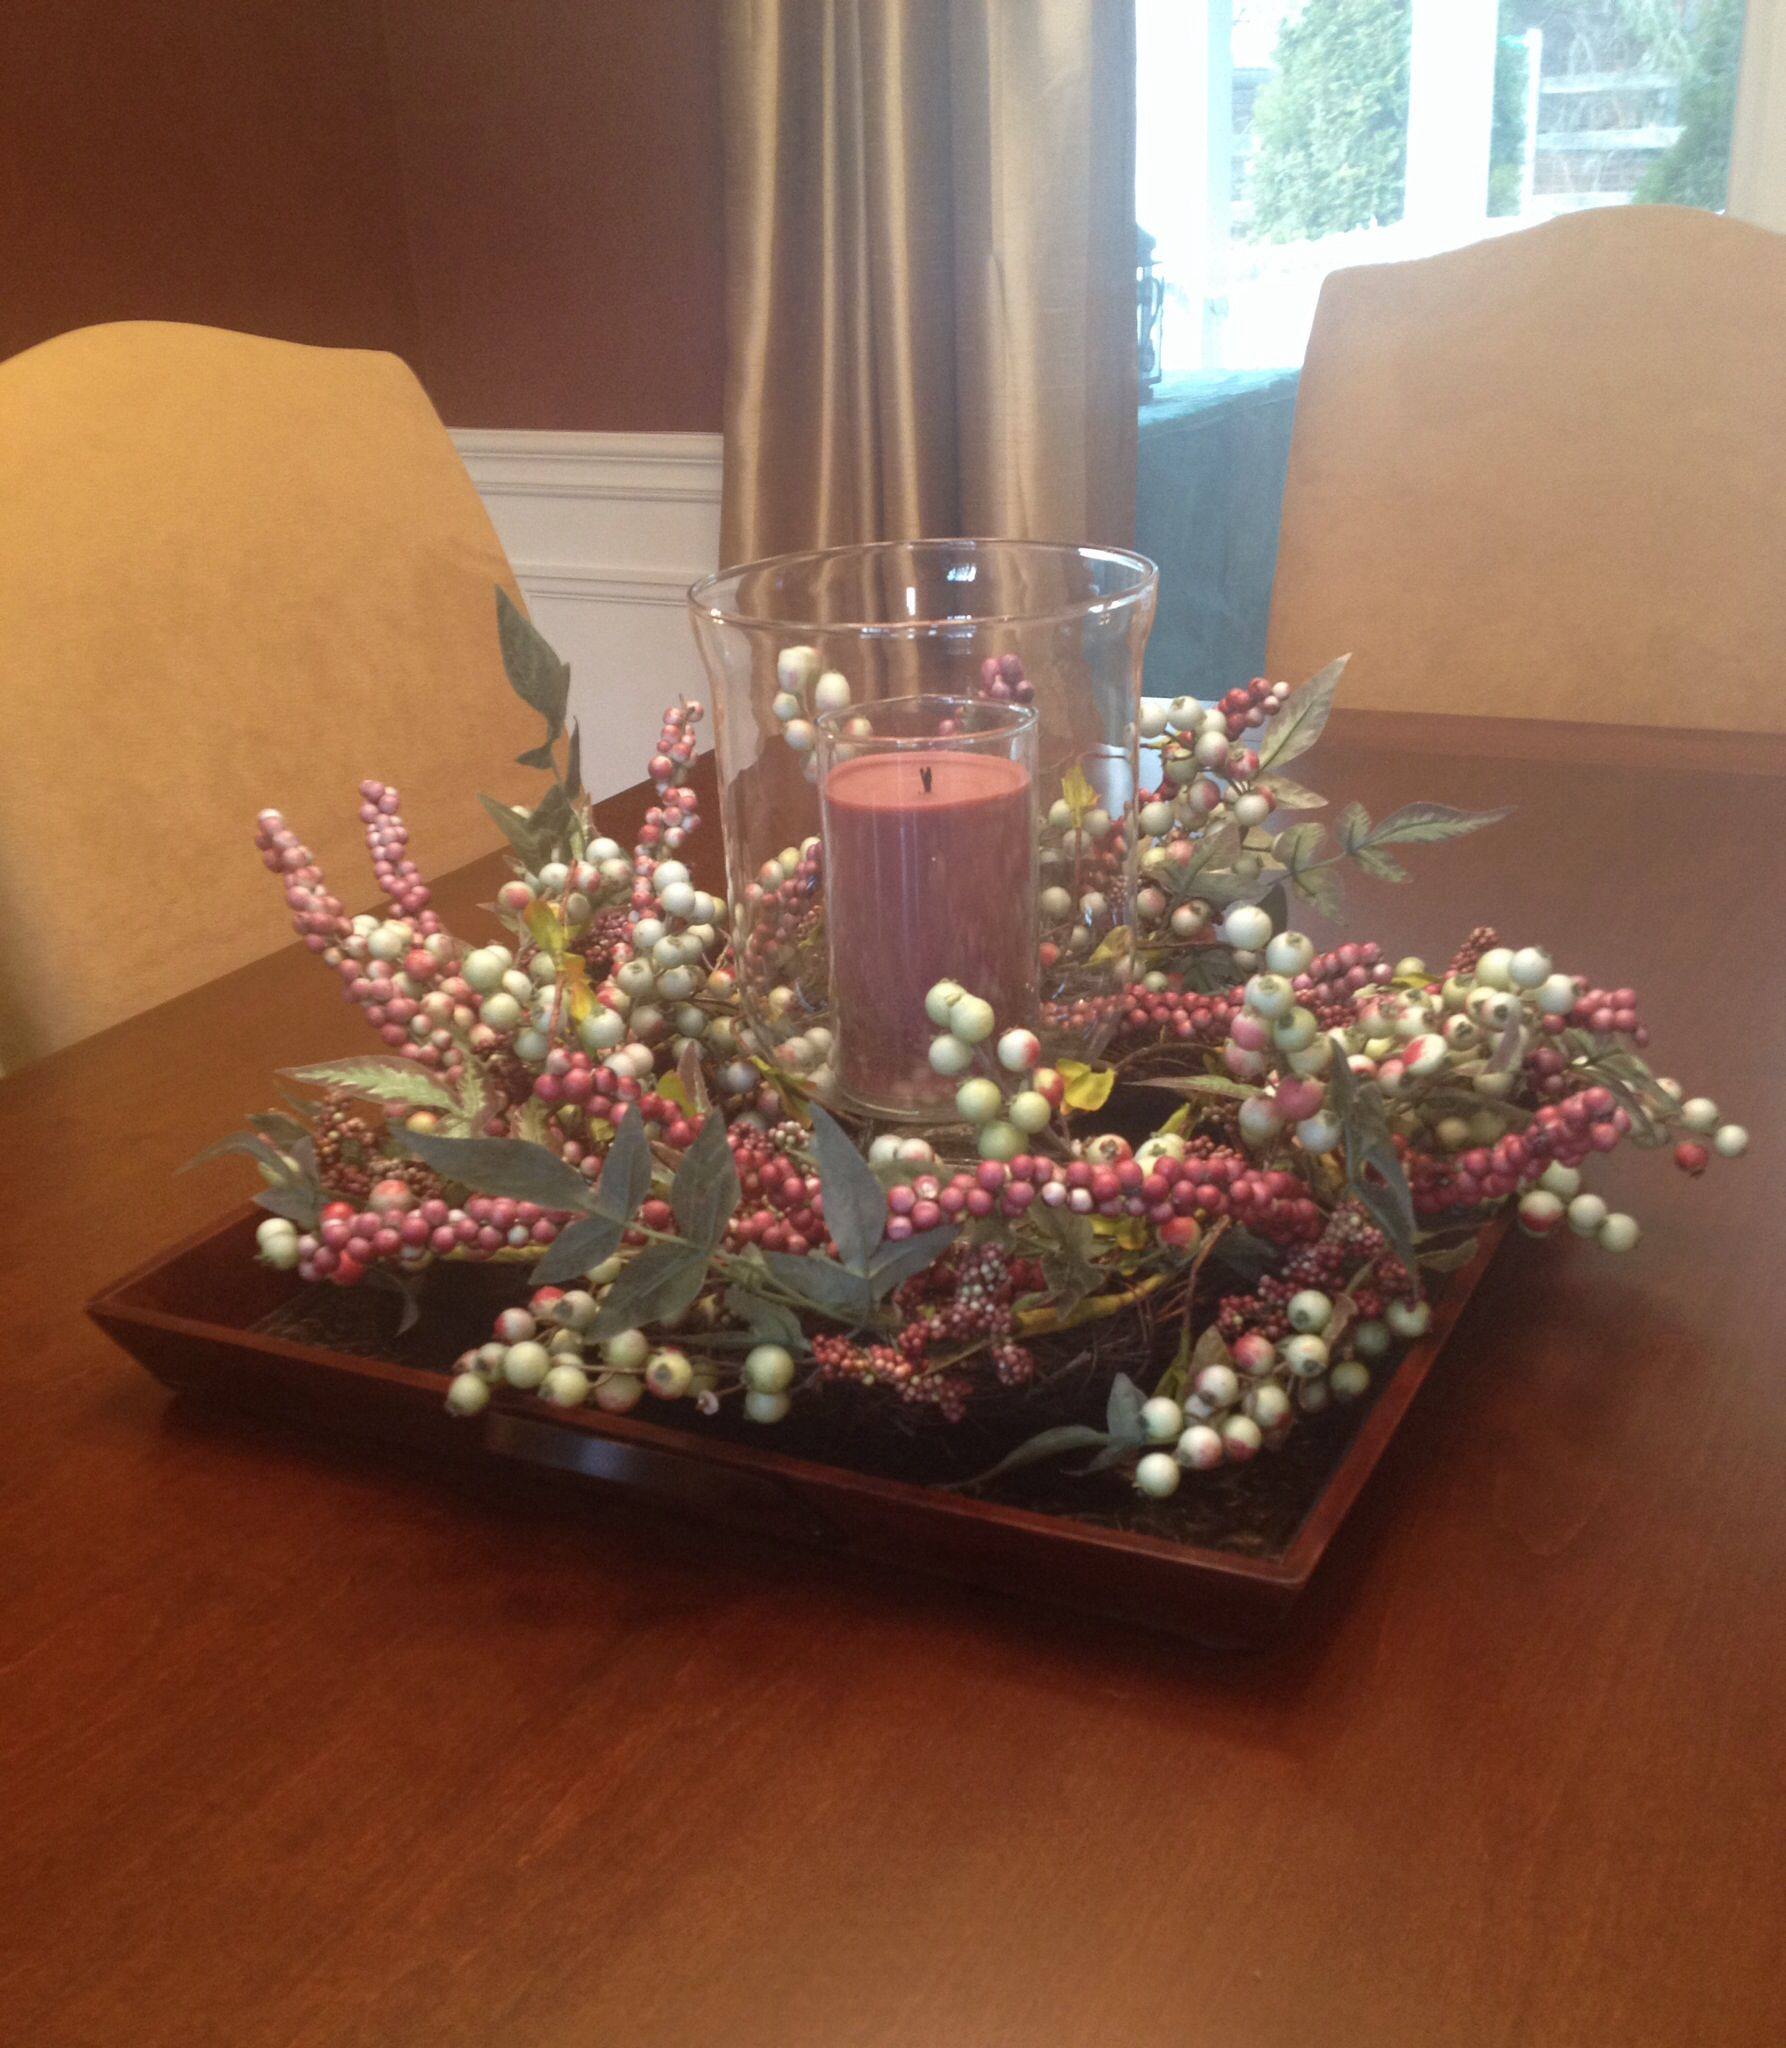 Dining Room With Flowers And Candle On Square Plate Farmhouse